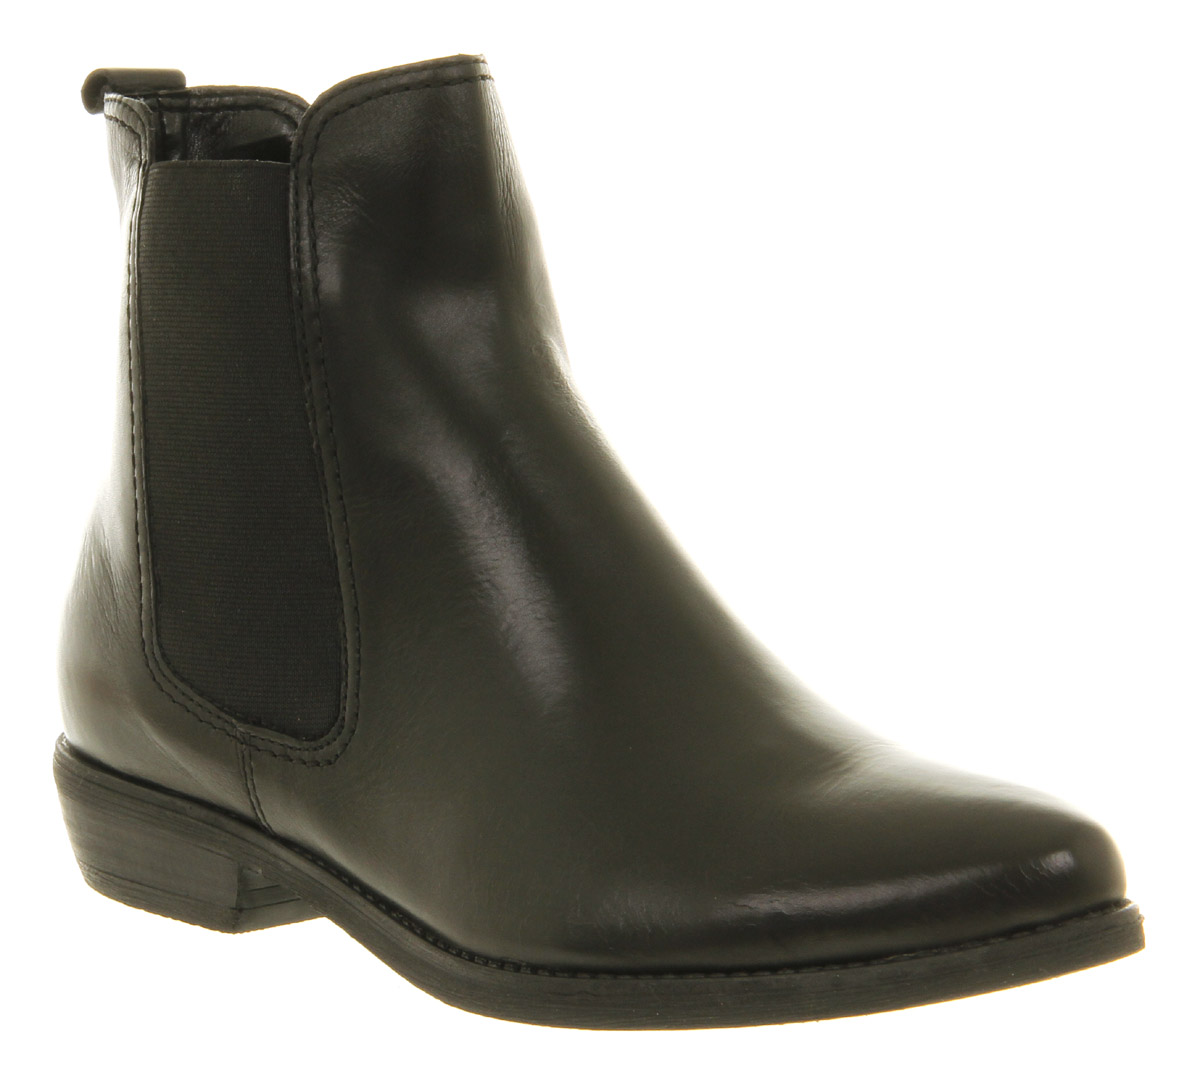 Bonham' leather Chelsea boots from UGG. Made from premium, water-resistant leather uppers, the ankle boots form a classic Chelsea construction with tonal elasticated side gussets and a heel pull tab for easy on off comfoisinsi.tk: $